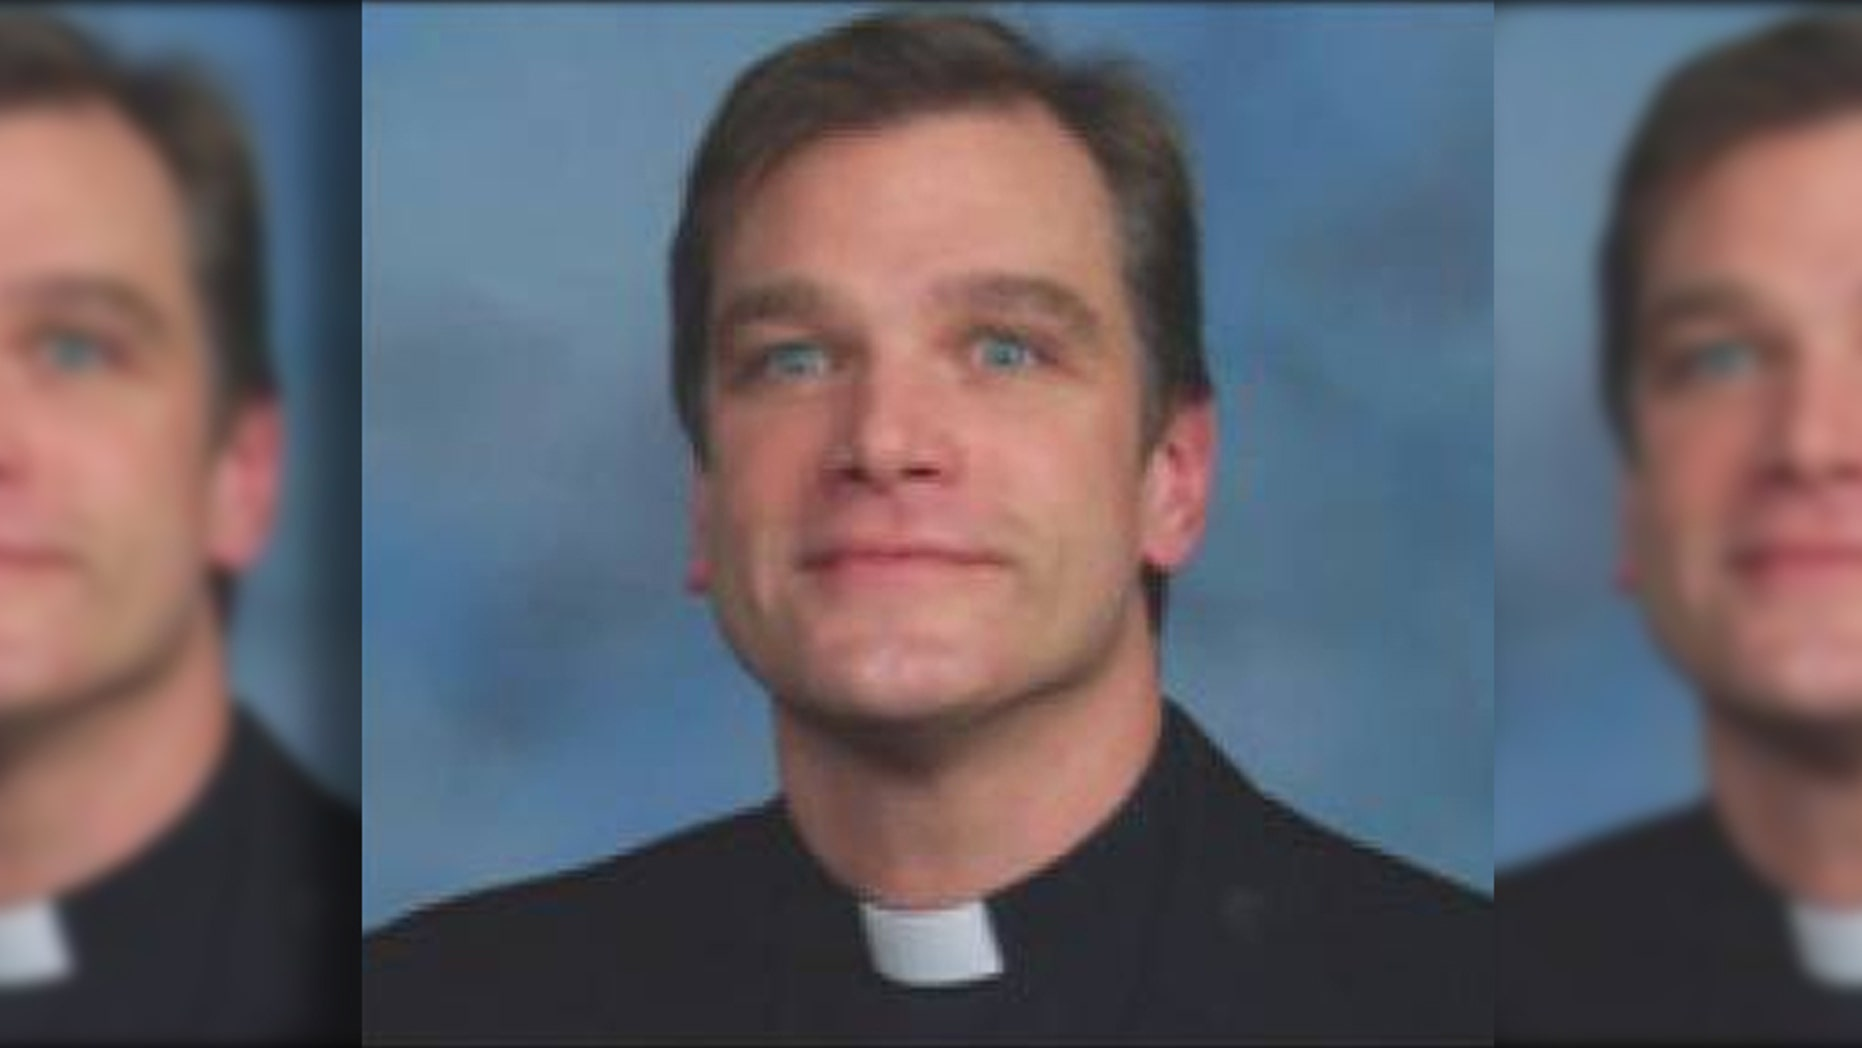 Father Paul Kalchik was removed from his parish in Chicago.